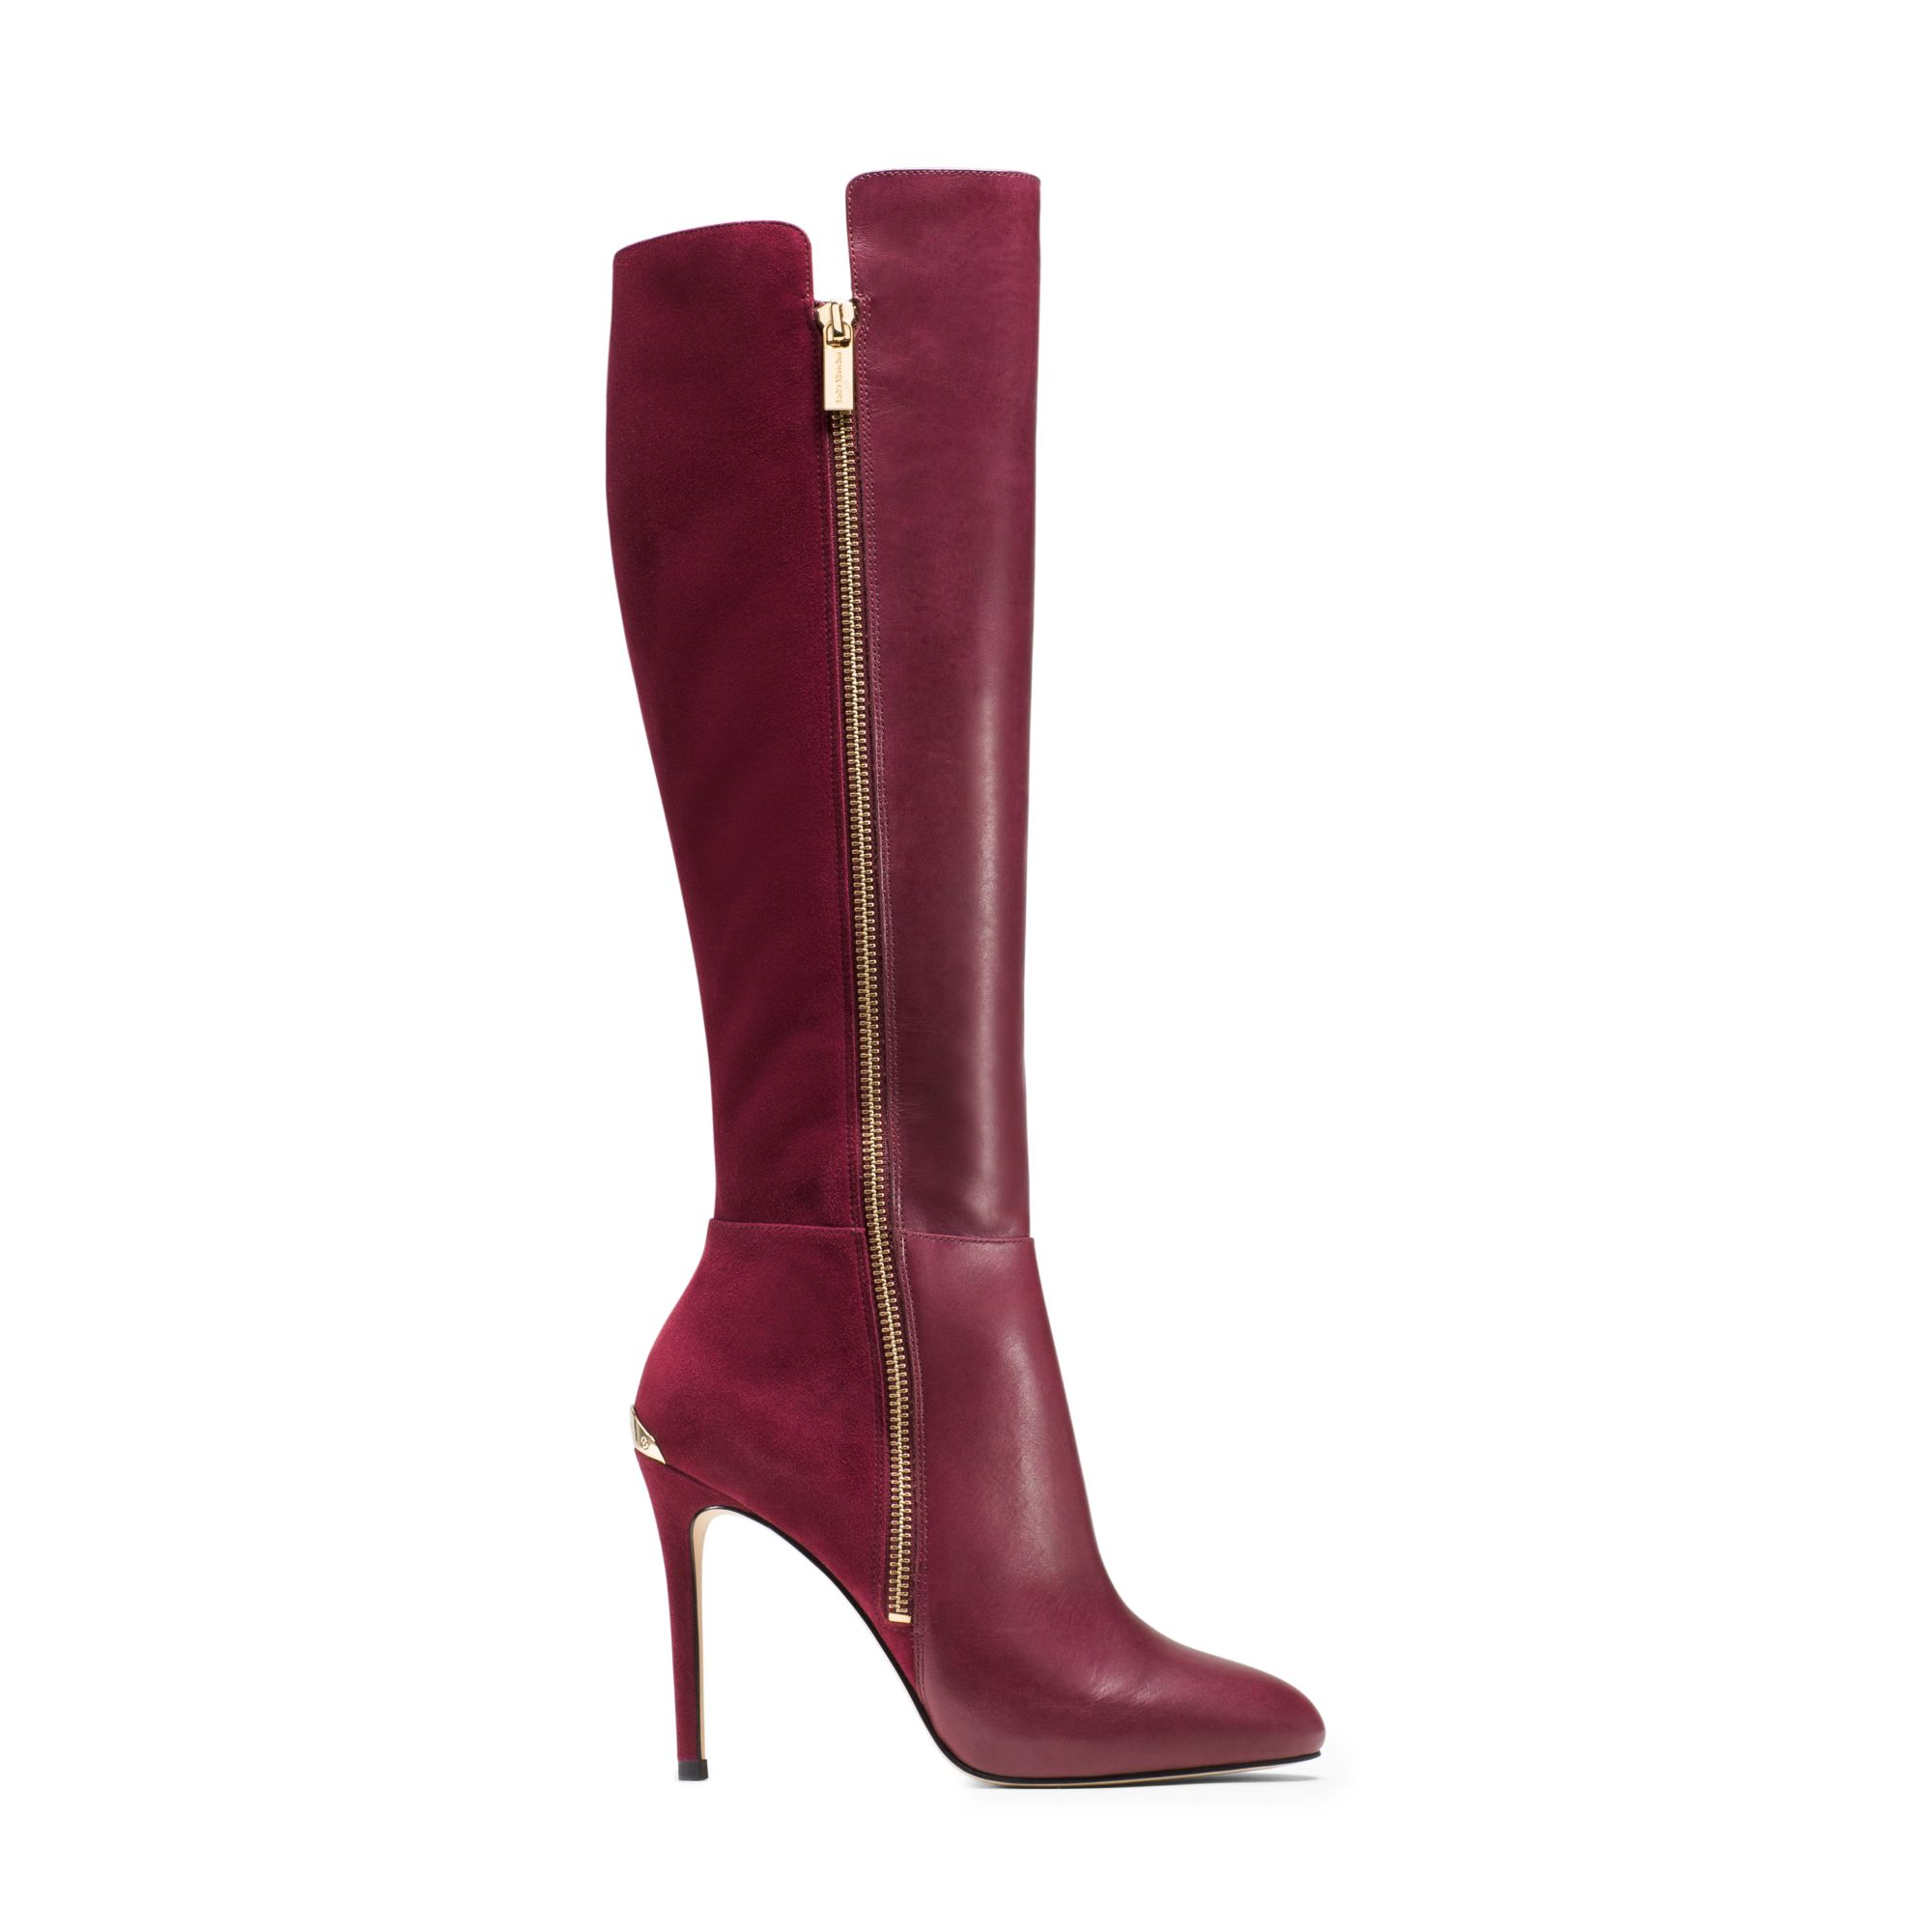 Michael kors clara leather and suede boot in purple lyst